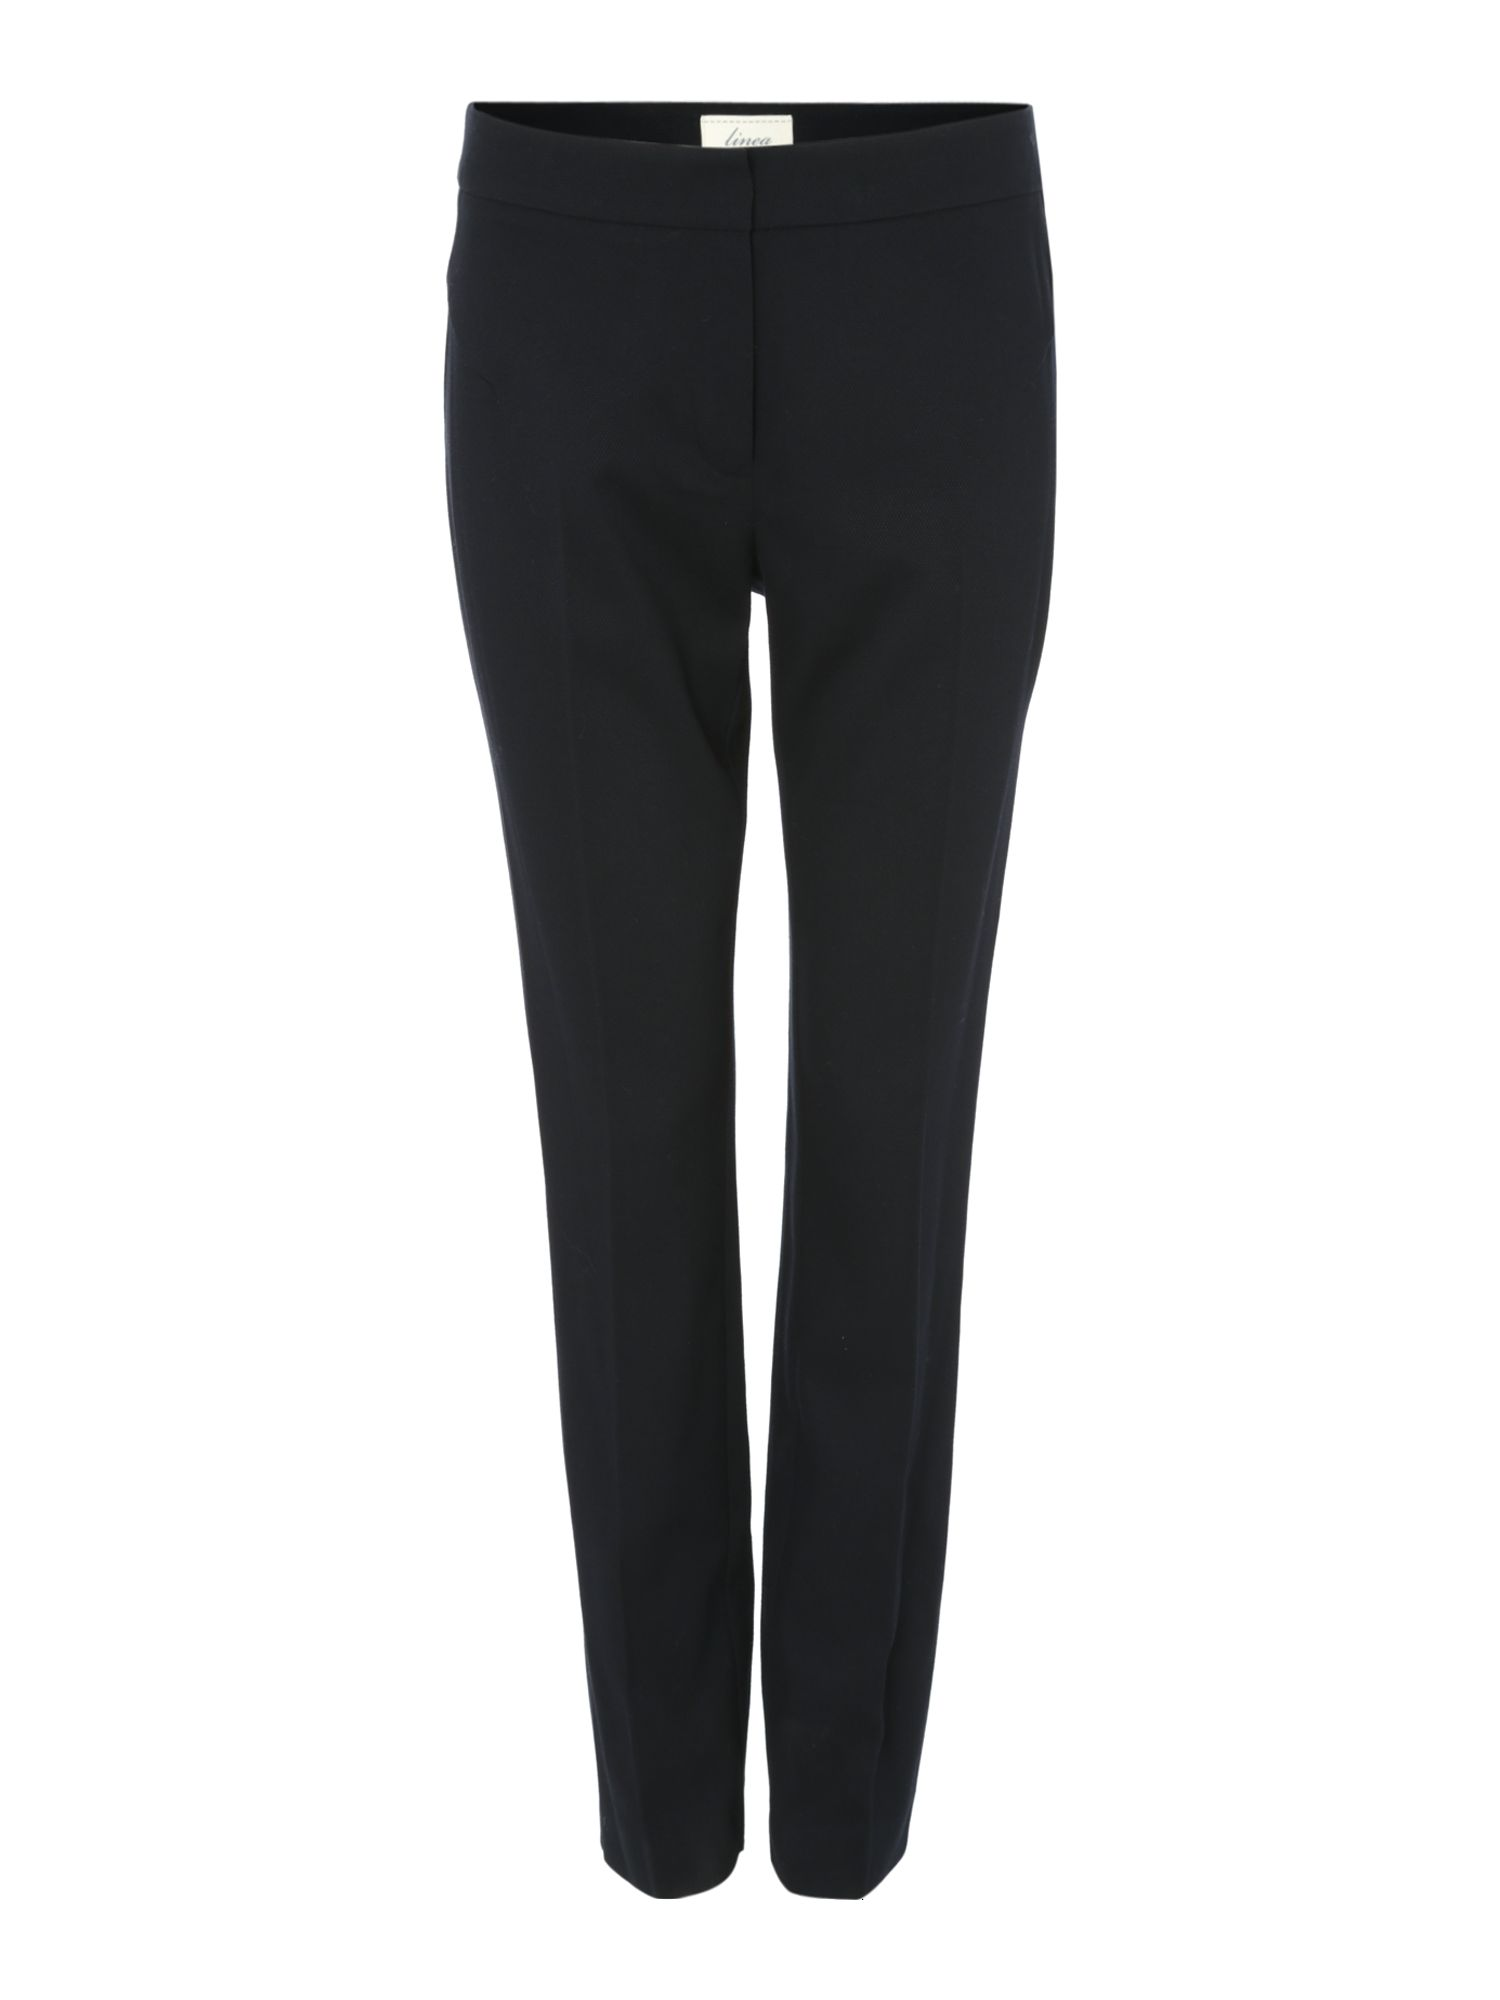 Essential stretch trouser